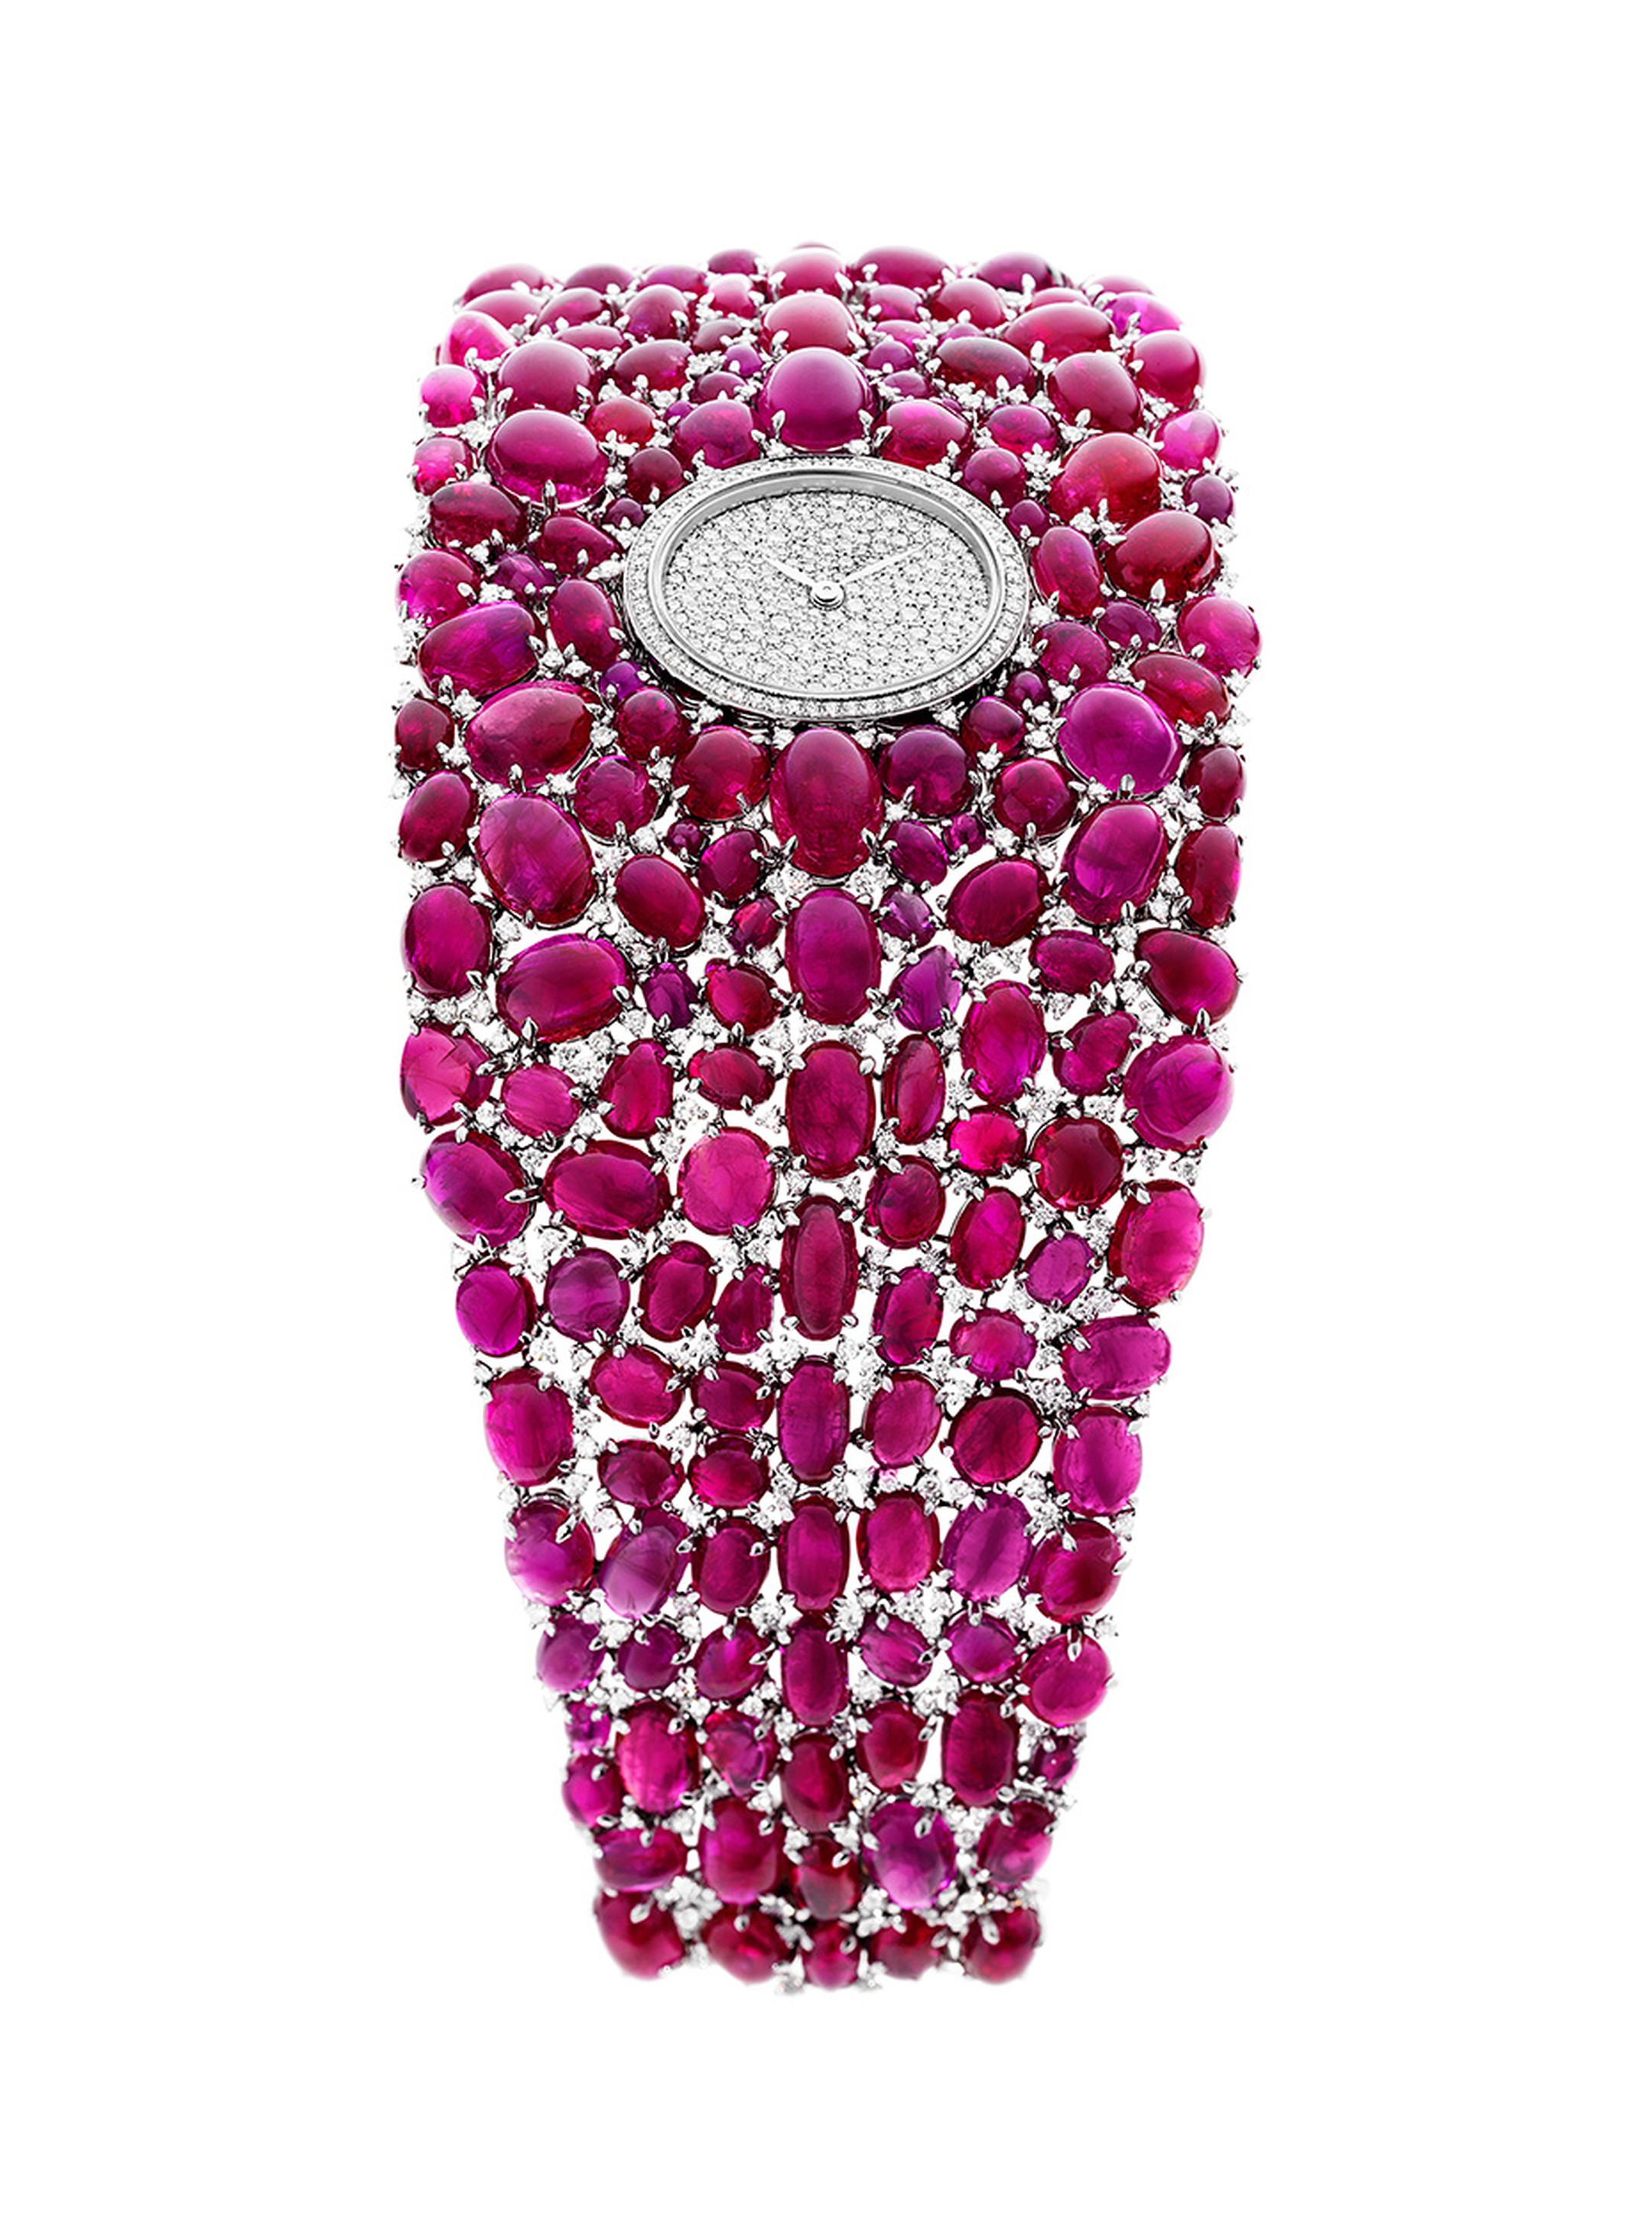 An incomparable statement in fine watchmaking for women, the cabochon-cut rubies on DeLaneau's Grace Ruby jewellery watch total 222.28ct.